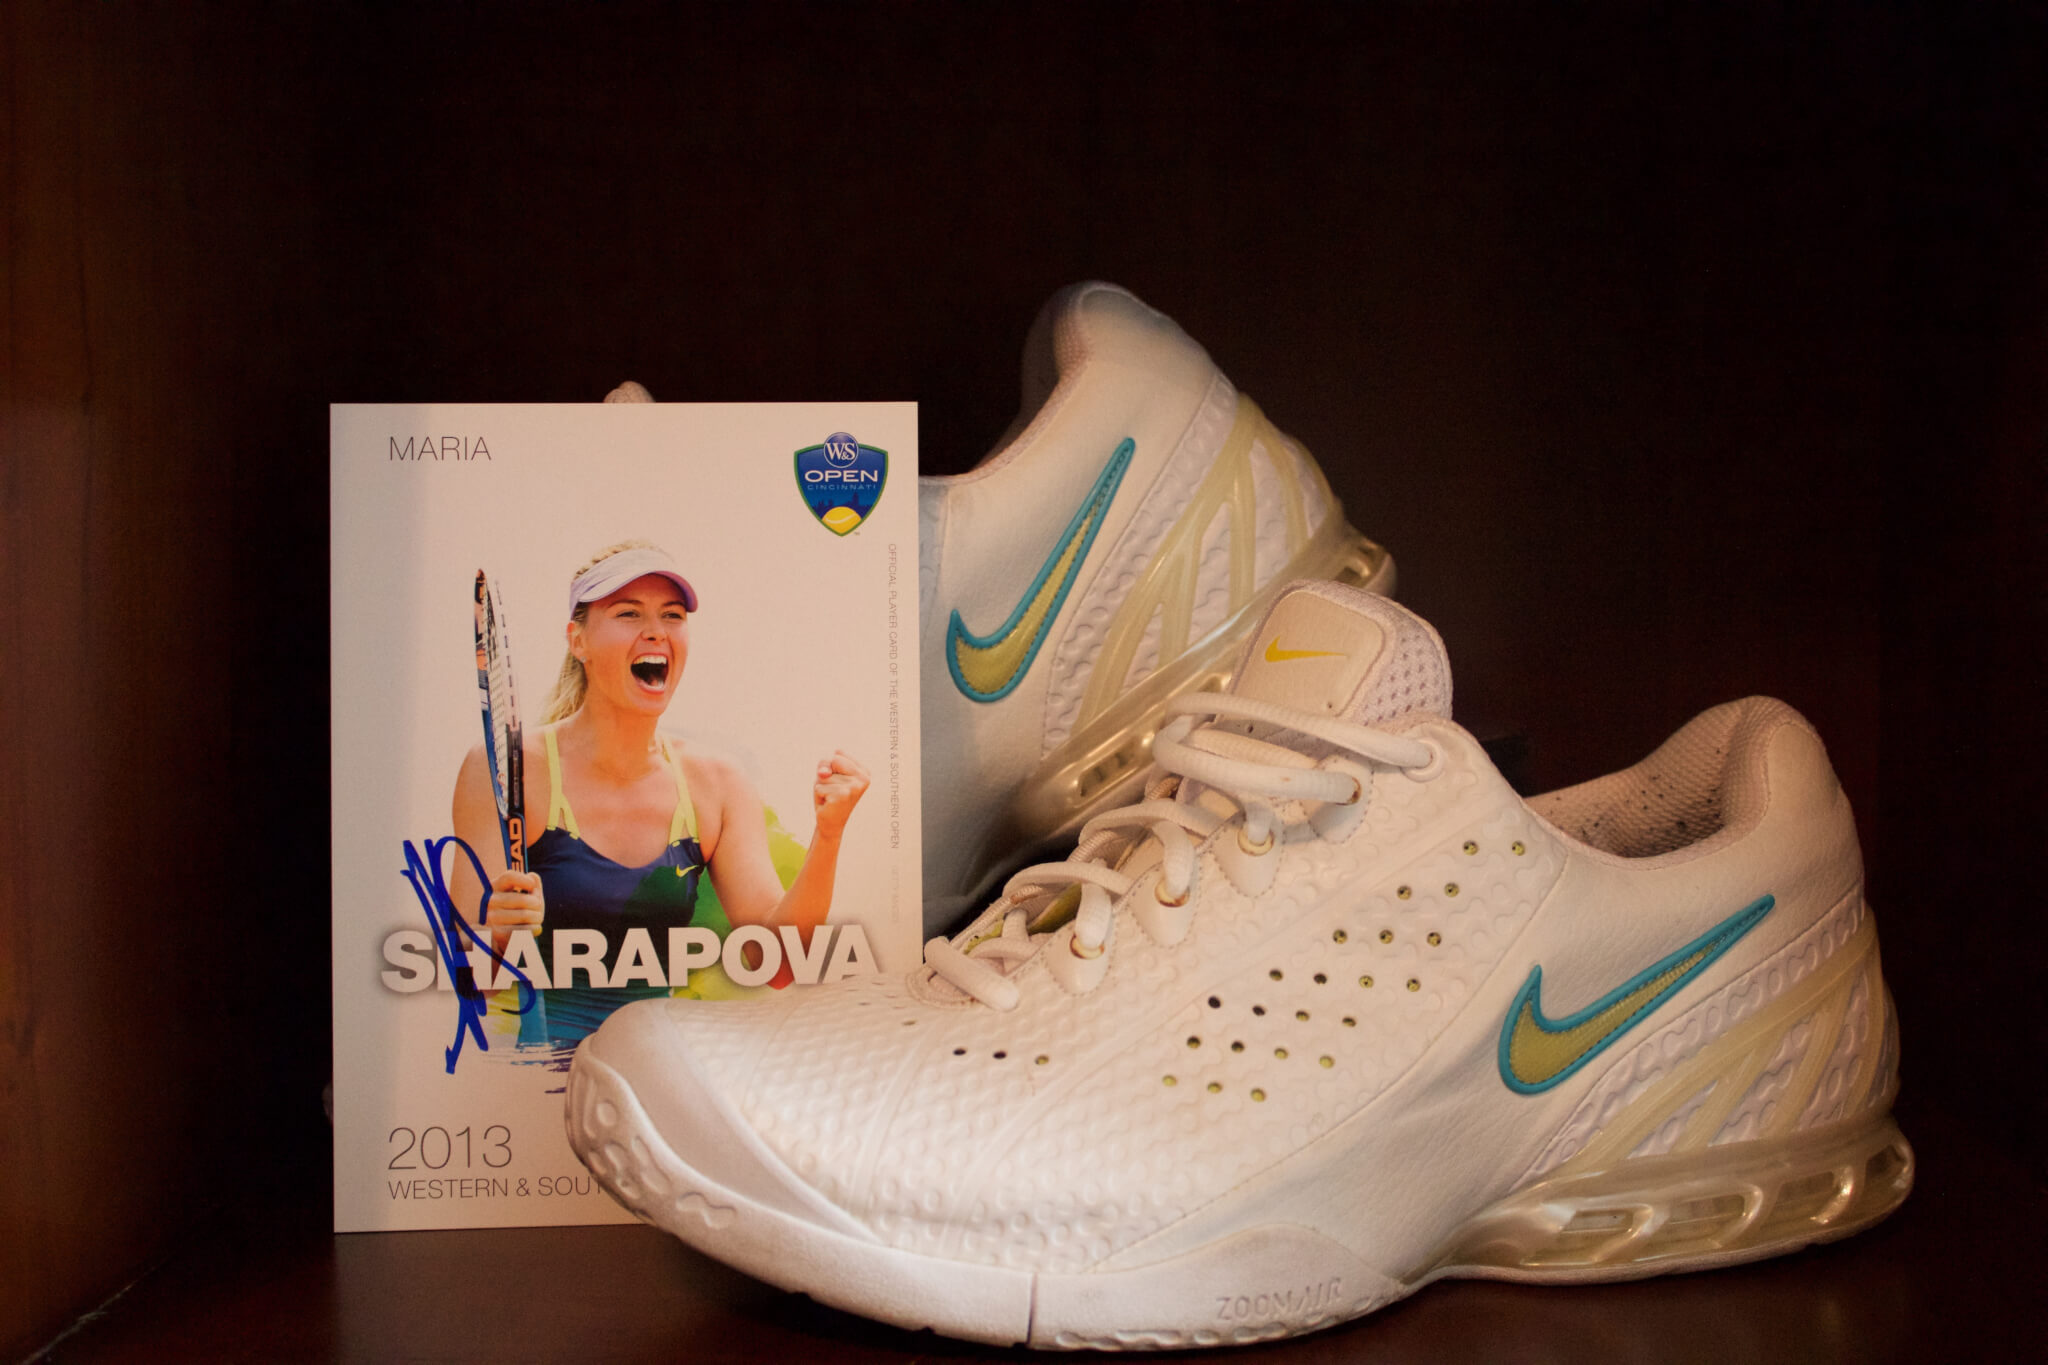 d3ab8ed9eb74 A Pair of Maria Sharapova Game-Used   Personalized Custom Nike Tennis Shoes.  2005 Australian Open. Includes Signed Promo Card.